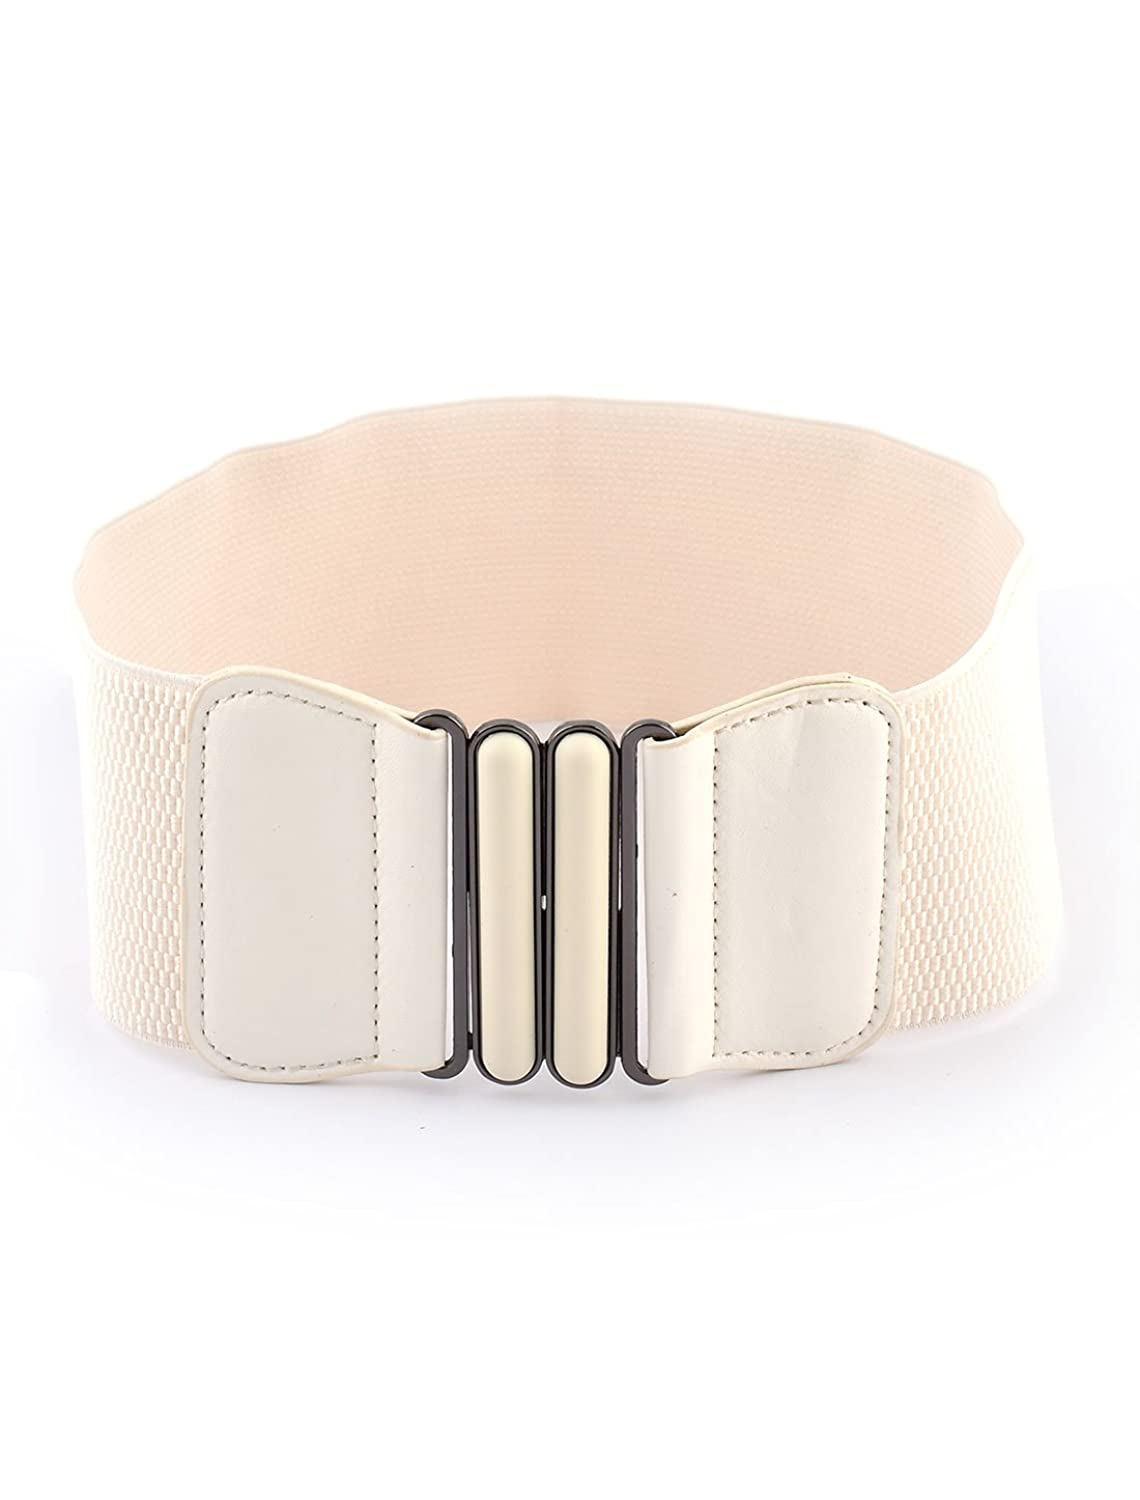 uxcell Women Travel Shopping Retro Style Elastic Waist Belt Strap White Black